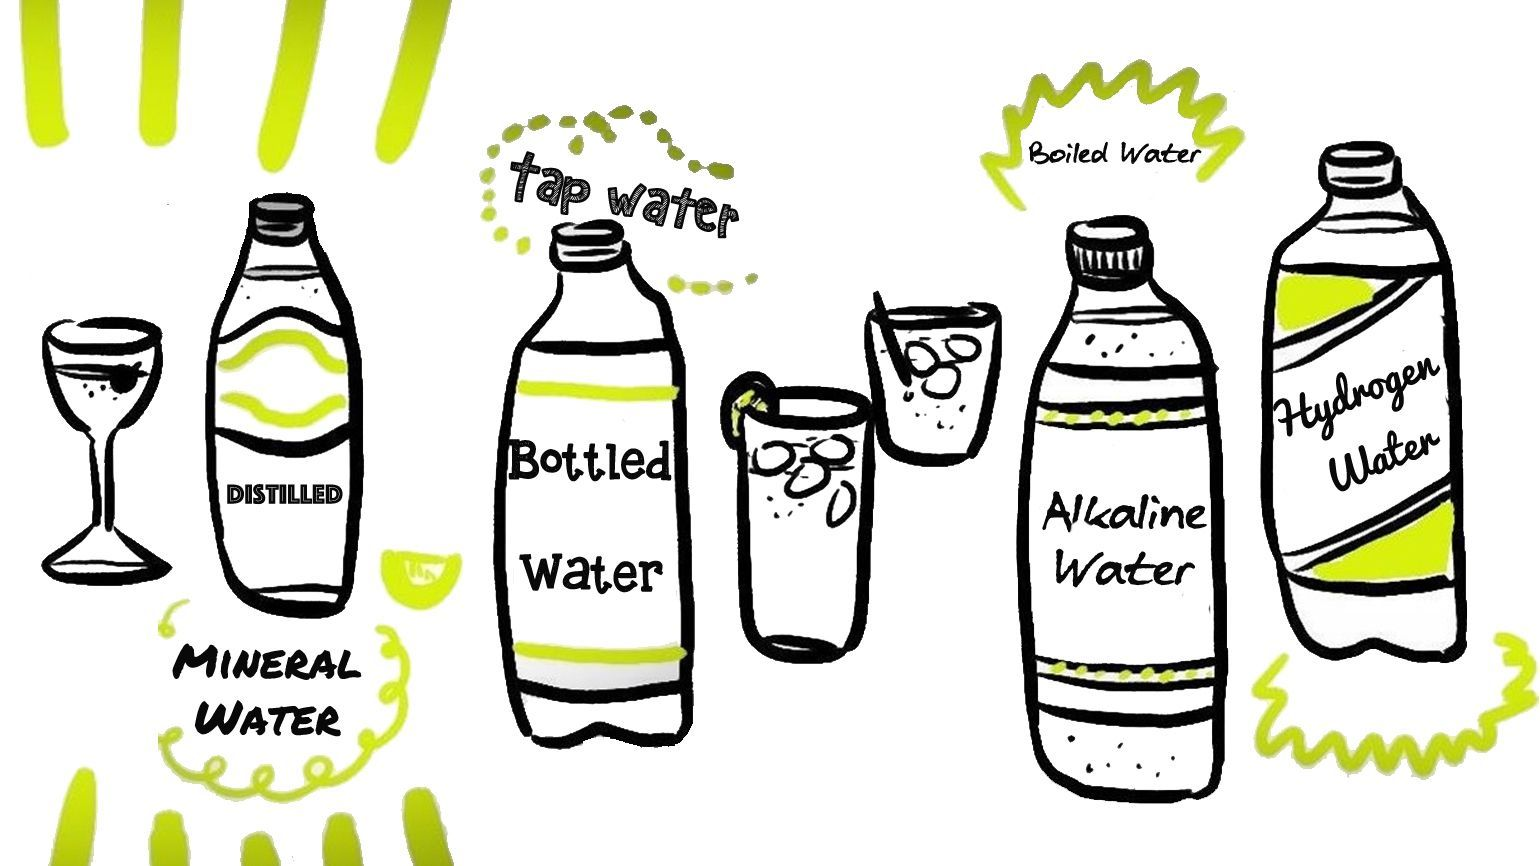 Best Water To Drink The Ultimate Guide To Drink For Better Health Healthy Drinks Health And Wellness Health